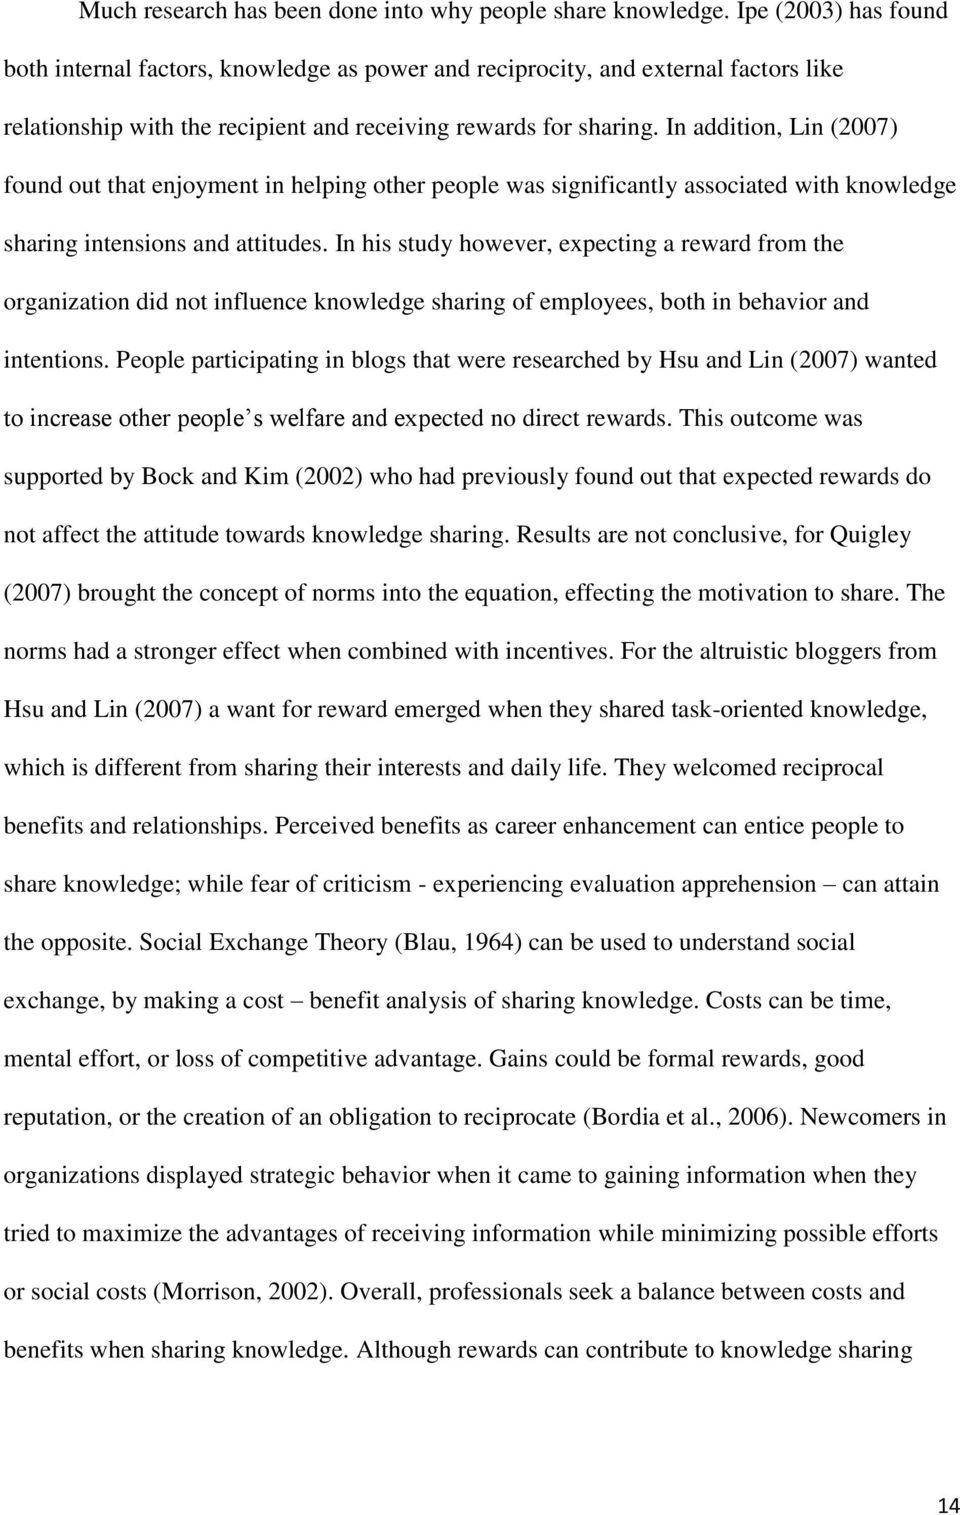 In addition, Lin (2007) found out that enjoyment in helping other people was significantly associated with knowledge sharing intensions and attitudes.